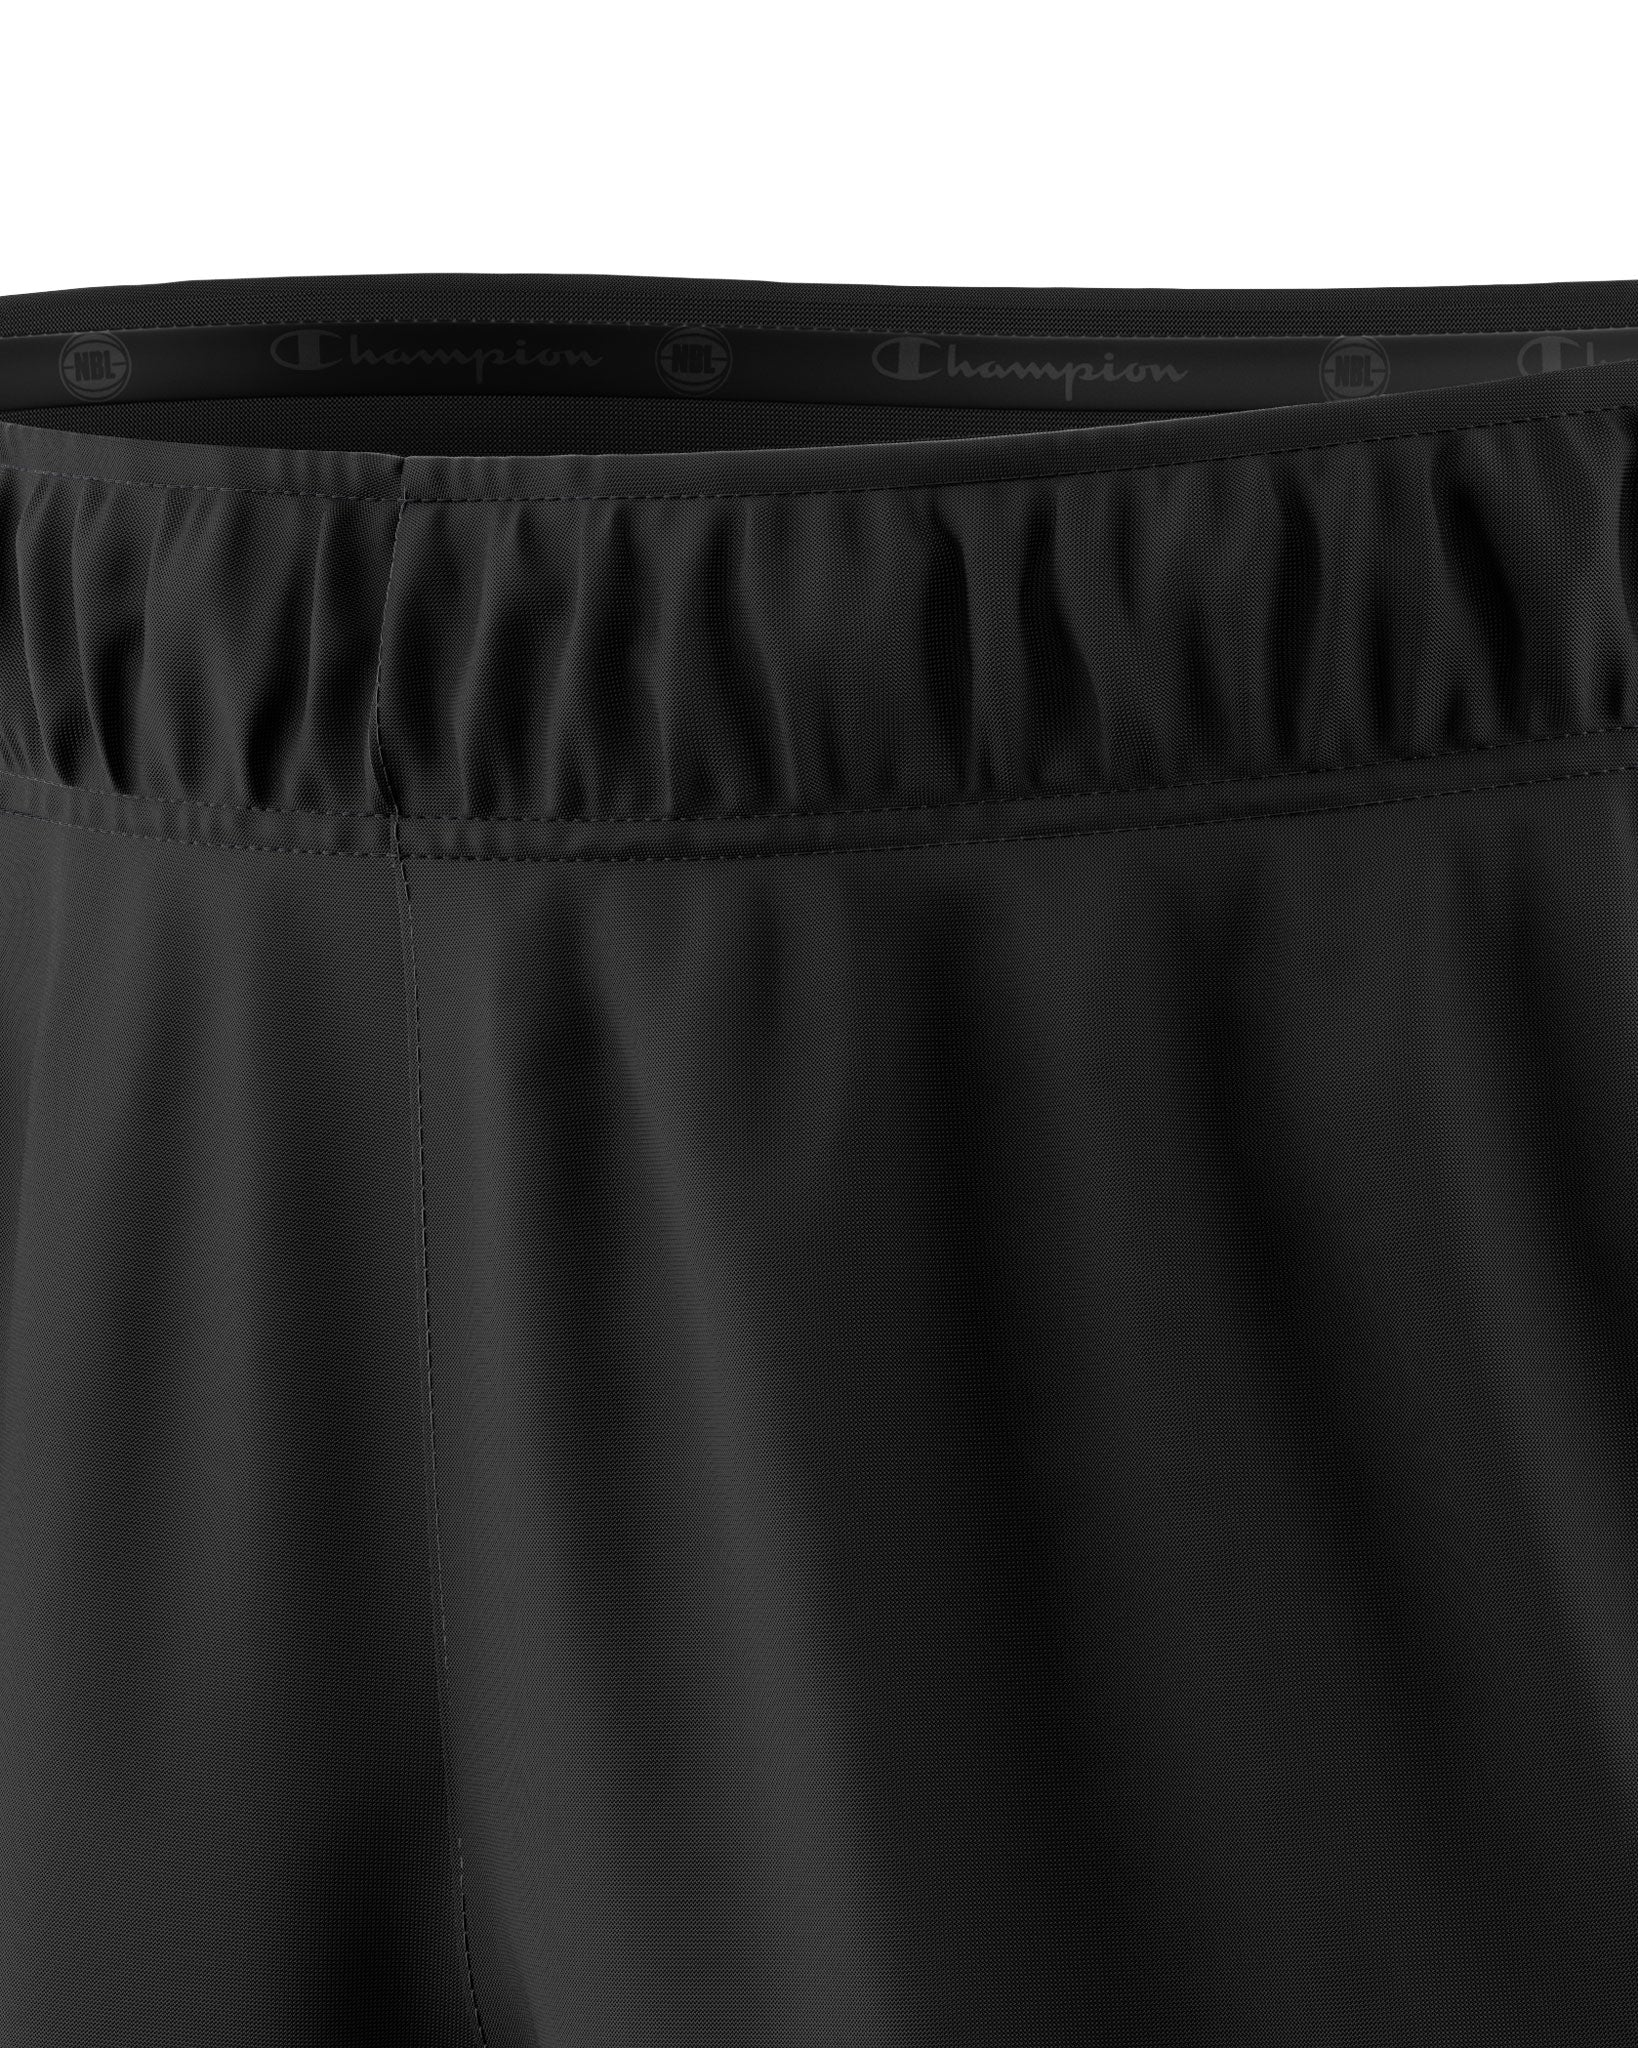 Sydney Kings 20/21 Gym Shorts